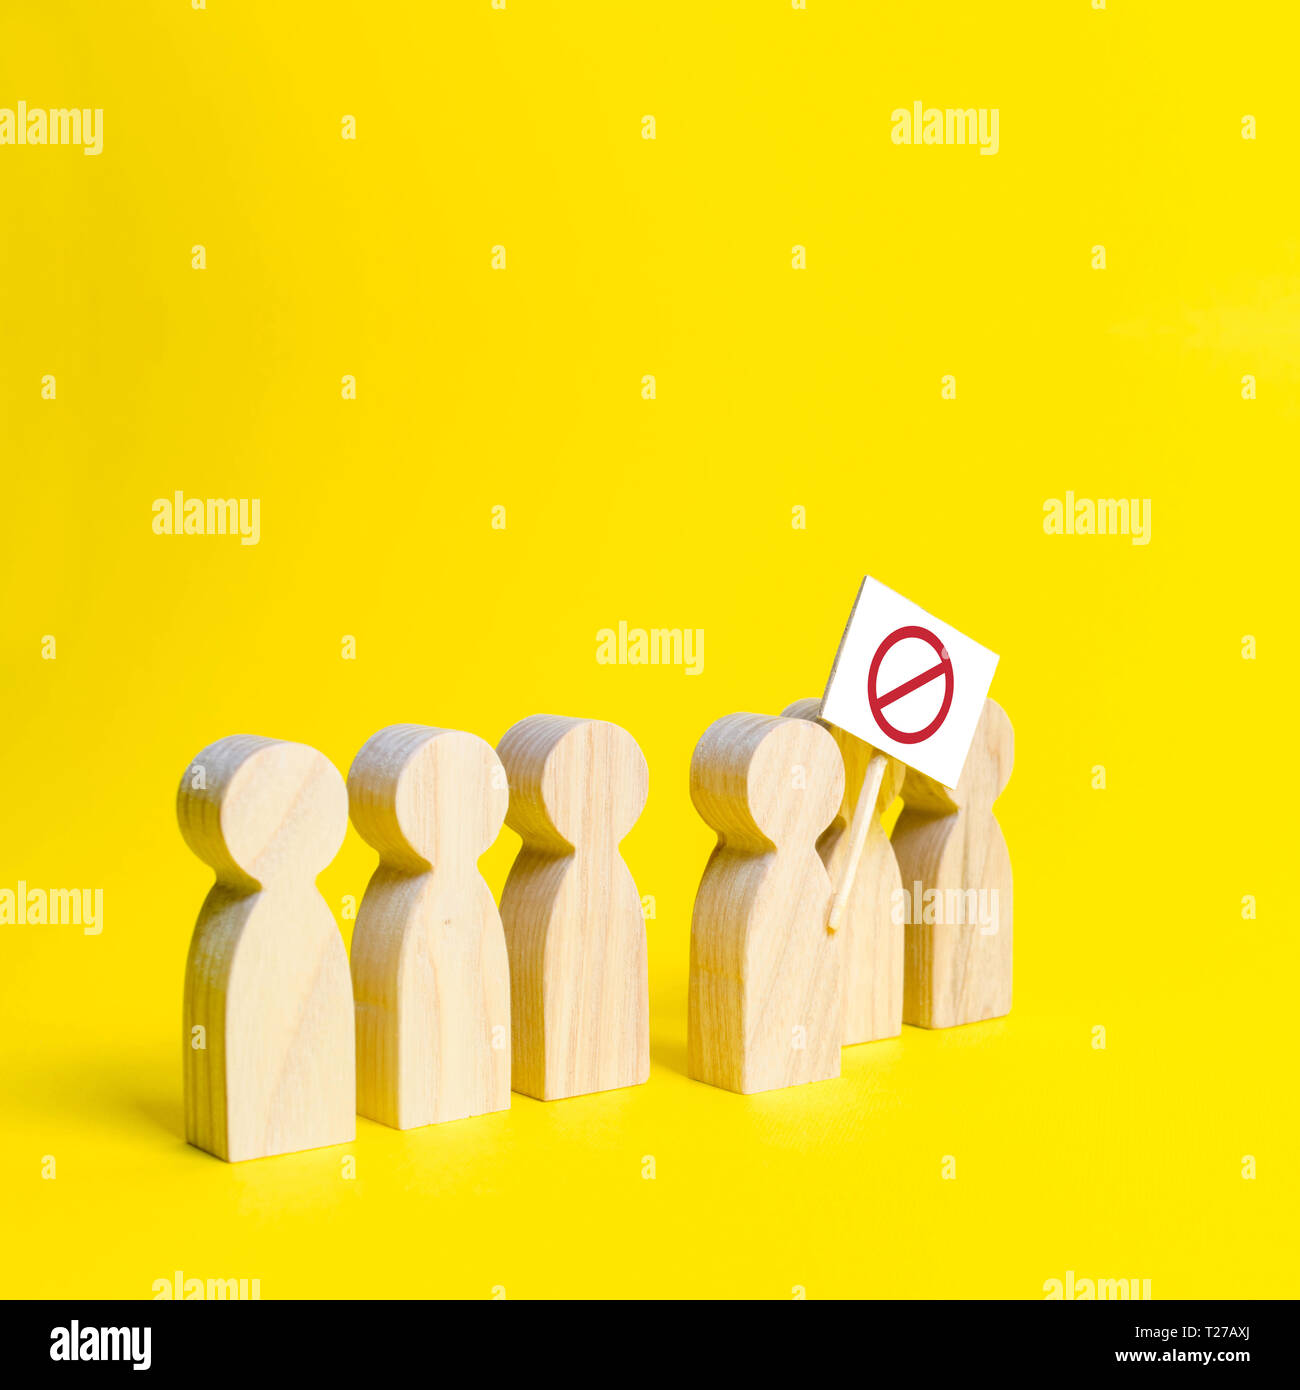 The person's figure comes out of the line with a sign on an yellow background. Social discontent and social tension, protest and disagreement. An angr - Stock Image